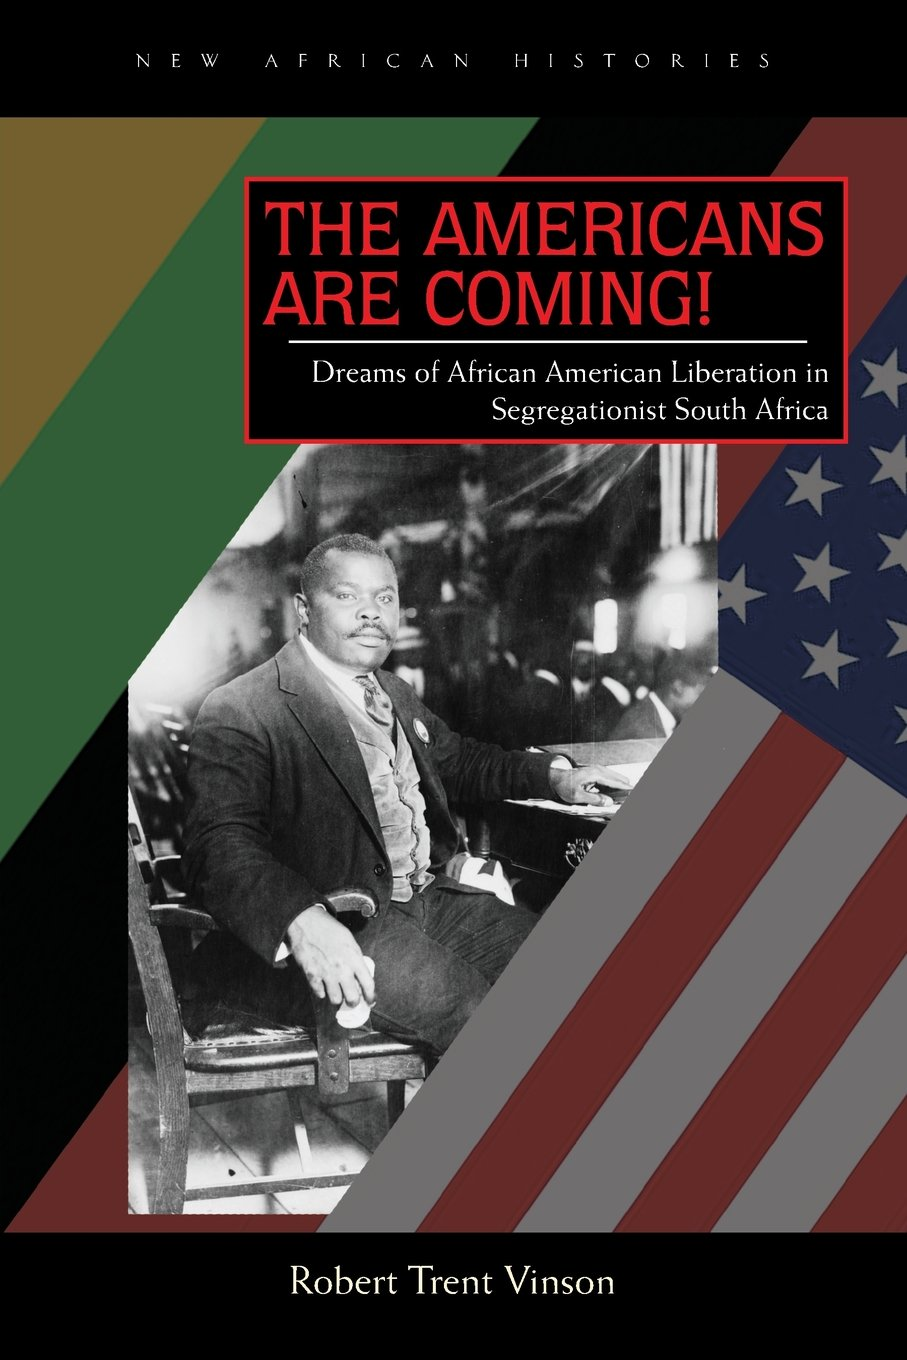 Download The Americans Are Coming!: Dreams of African American Liberation in Segregationist South Africa (New African Histories) ebook